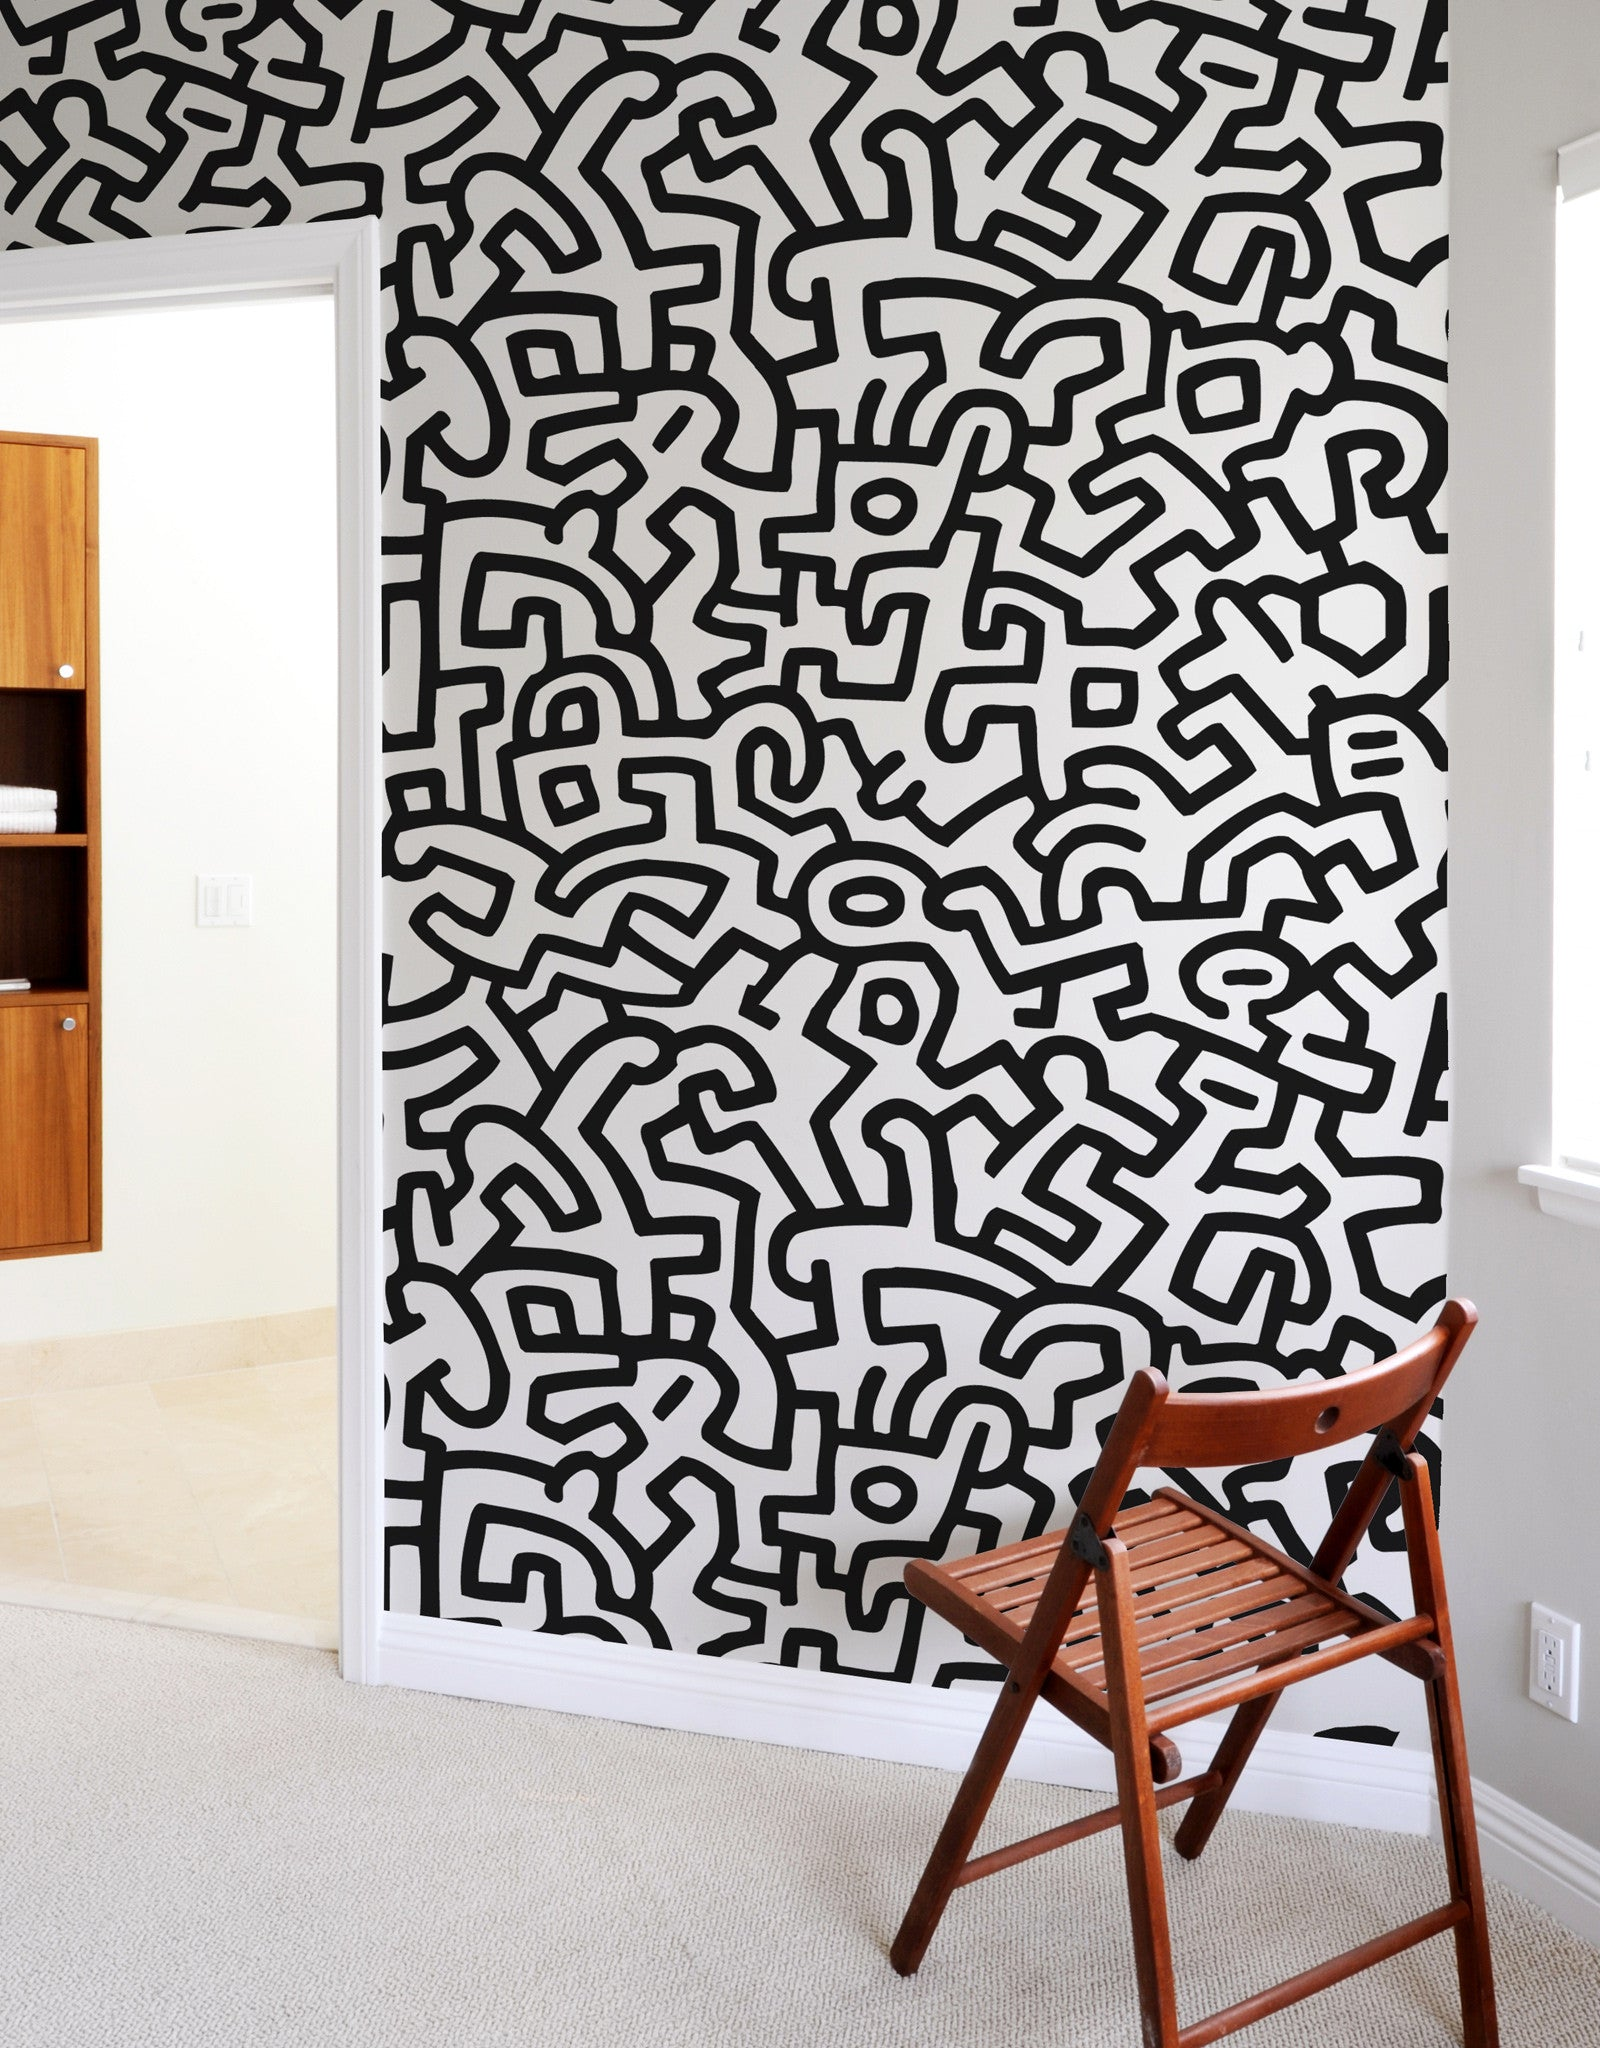 Keith Haring Adhesive Wall Tiles